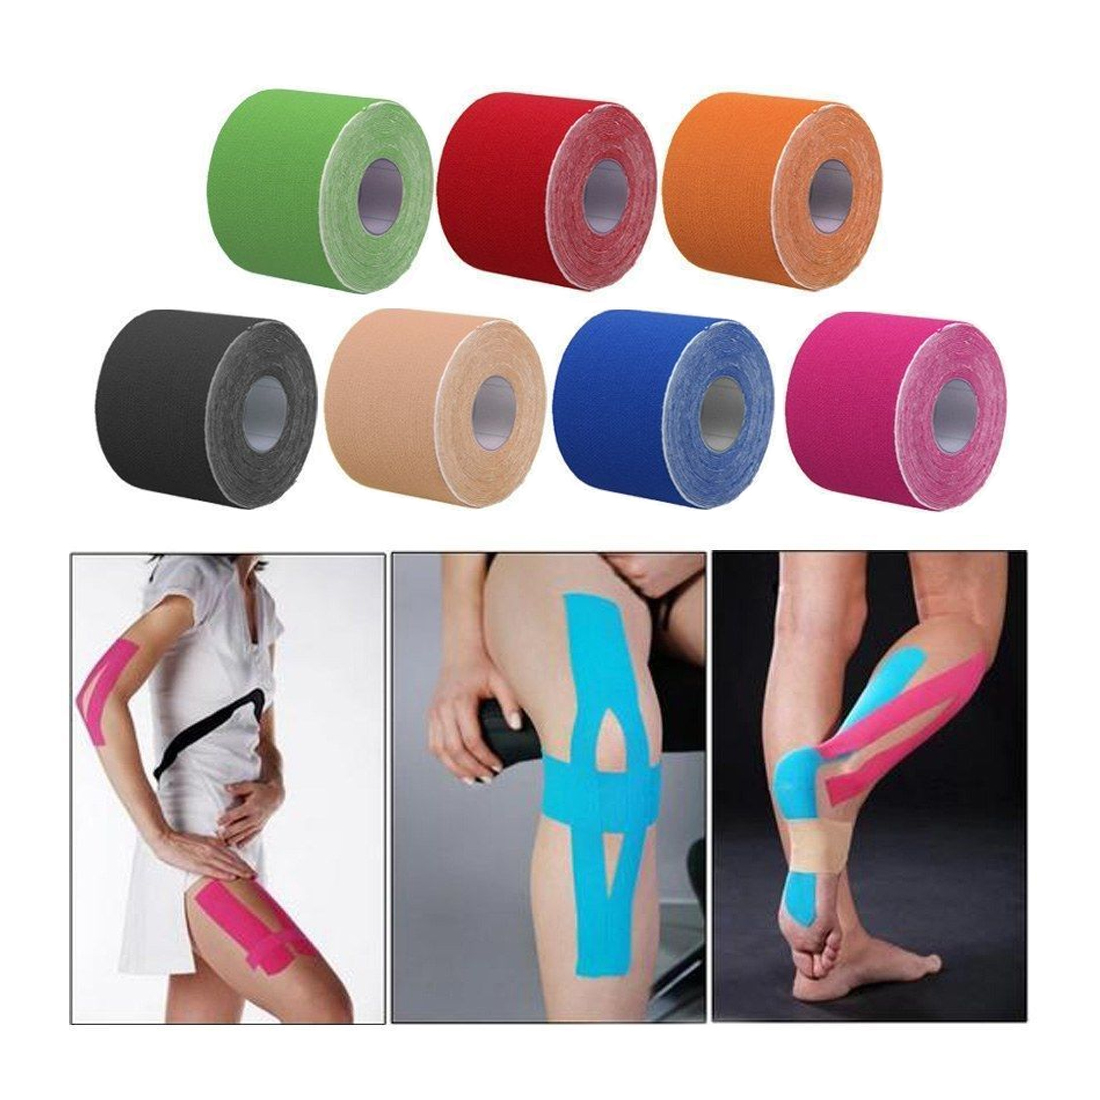 2.5cmx5m Waterproof tape Athletic Kinesiology Tape Sport Taping Strapping Basketball Football rodilleras deportivas Muscle tape plaid